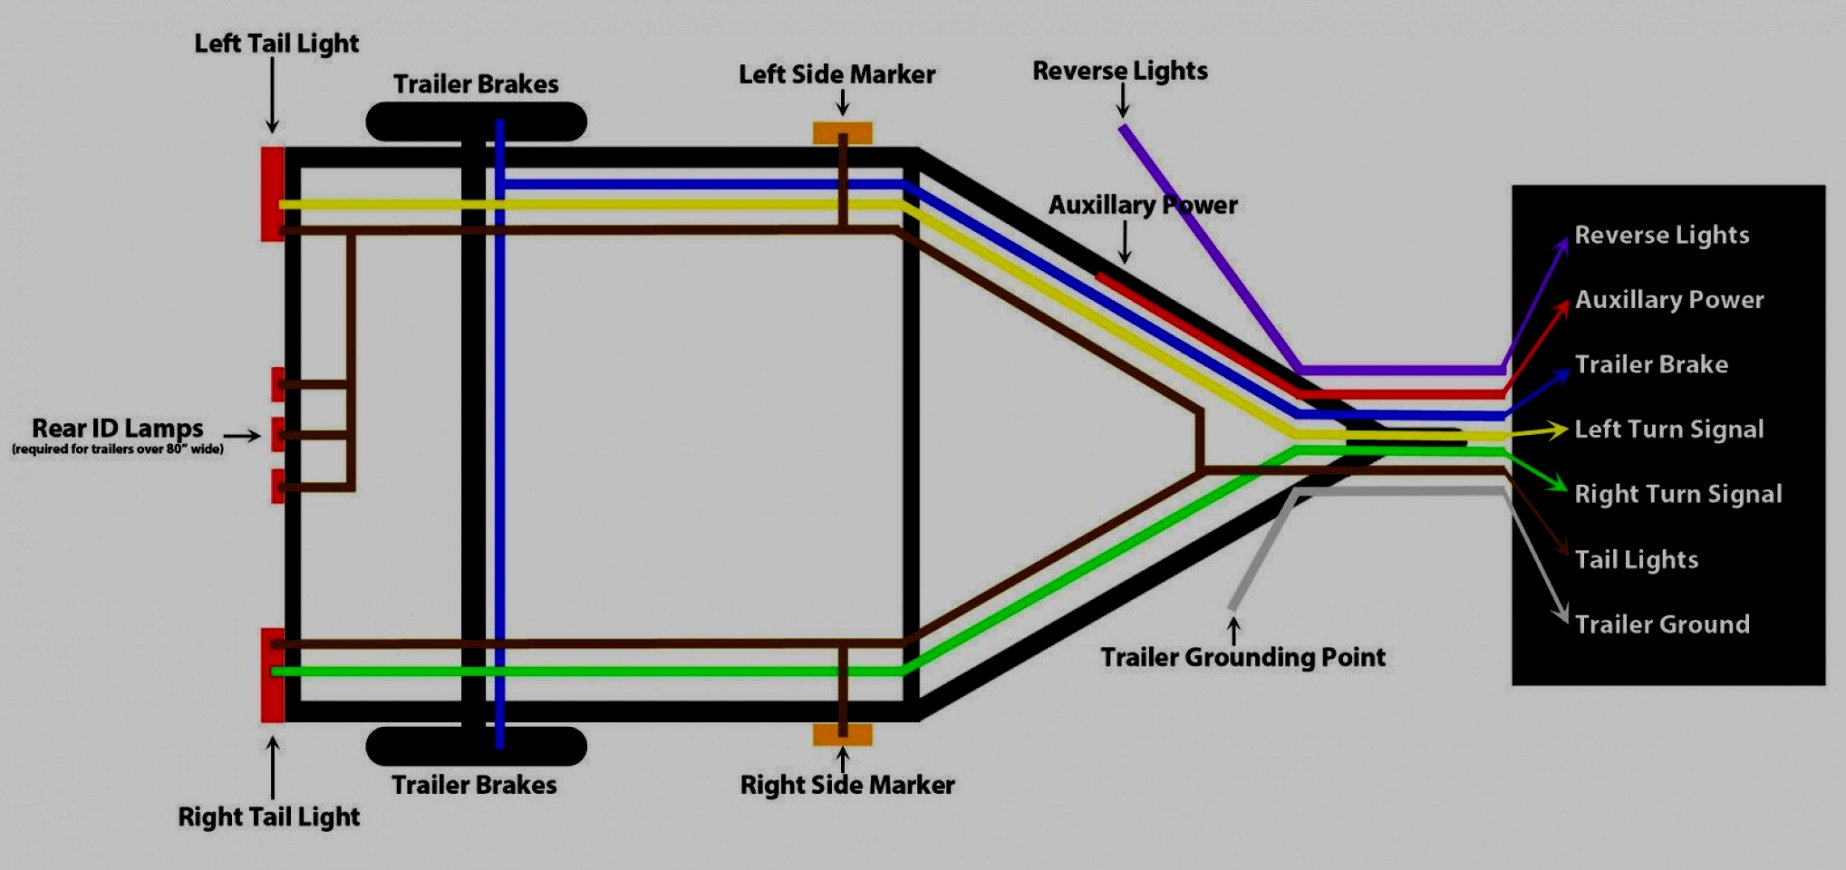 Snowmobile Trailer Wiring Harness | Manual E-Books - Snowmobile Trailer Wiring Diagram